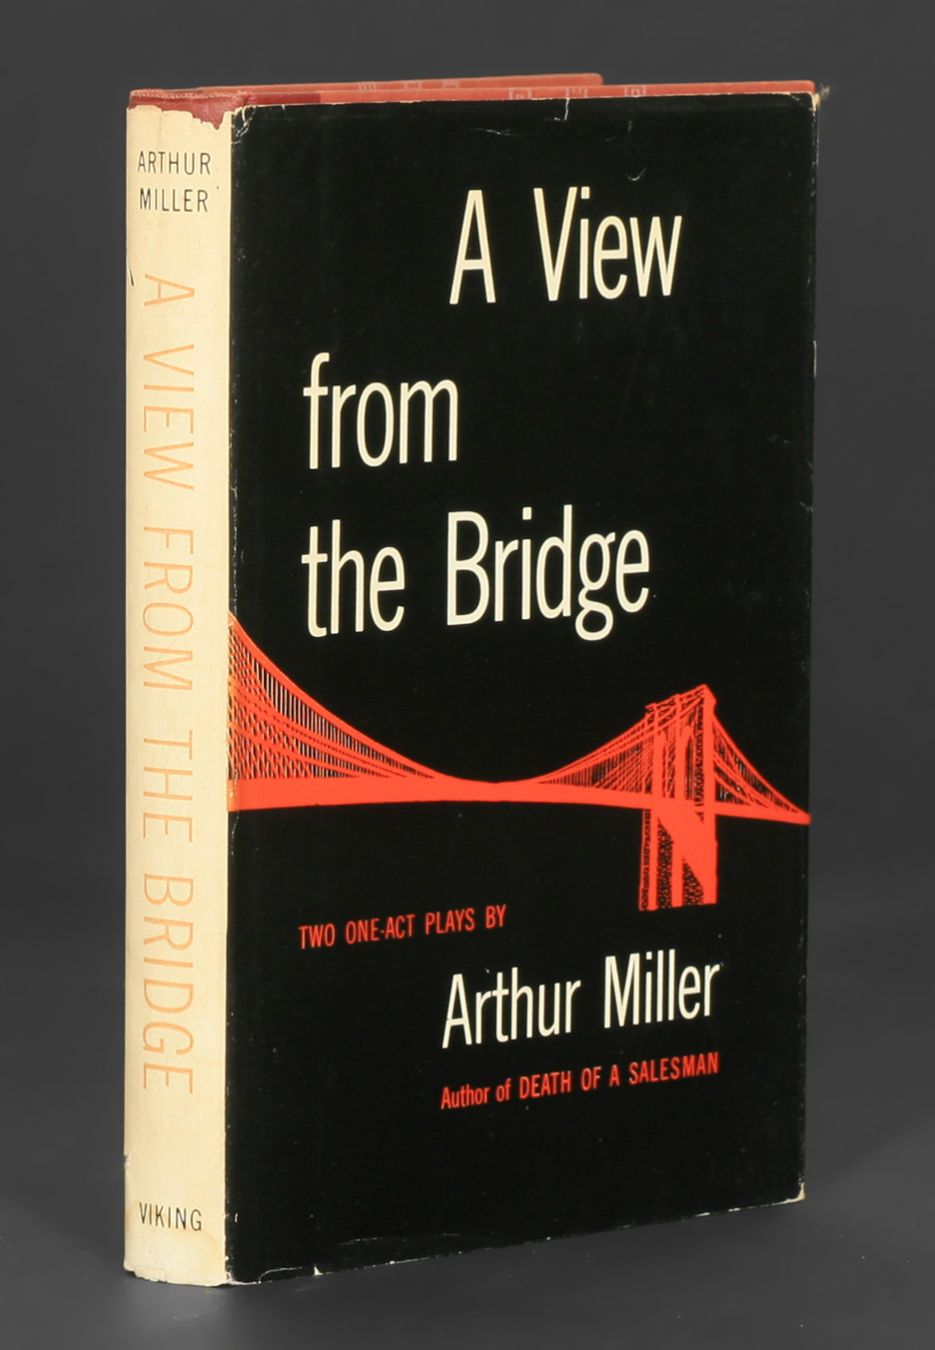 arthur miller a view from the bridge coursework A short summary of arthur miller's a view from the bridge this free synopsis covers all the crucial plot points of a view from the bridge their bloody course.